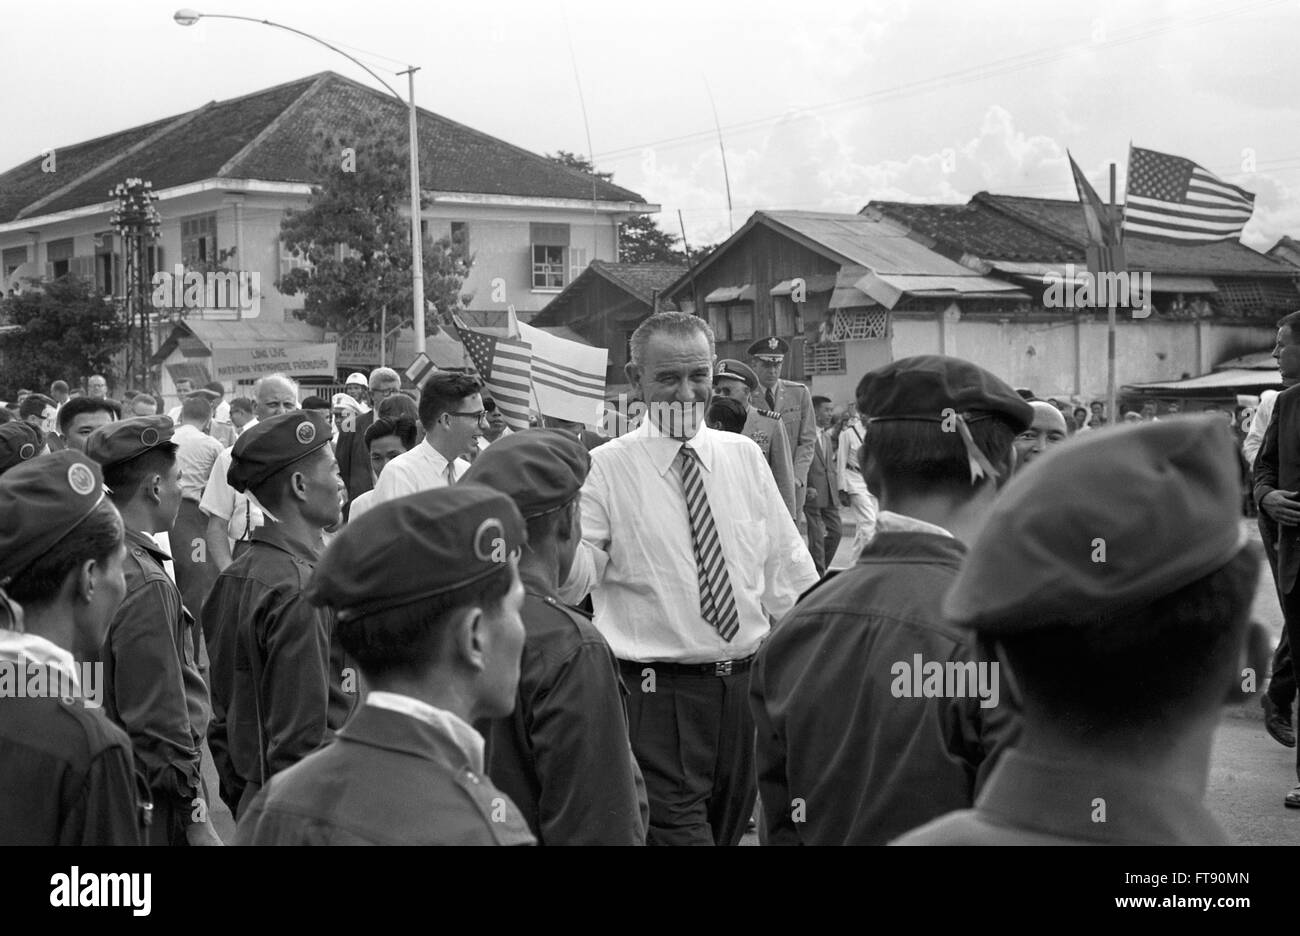 Lyndon B. Johnson in South Vietnam, 1962. - Stock Image